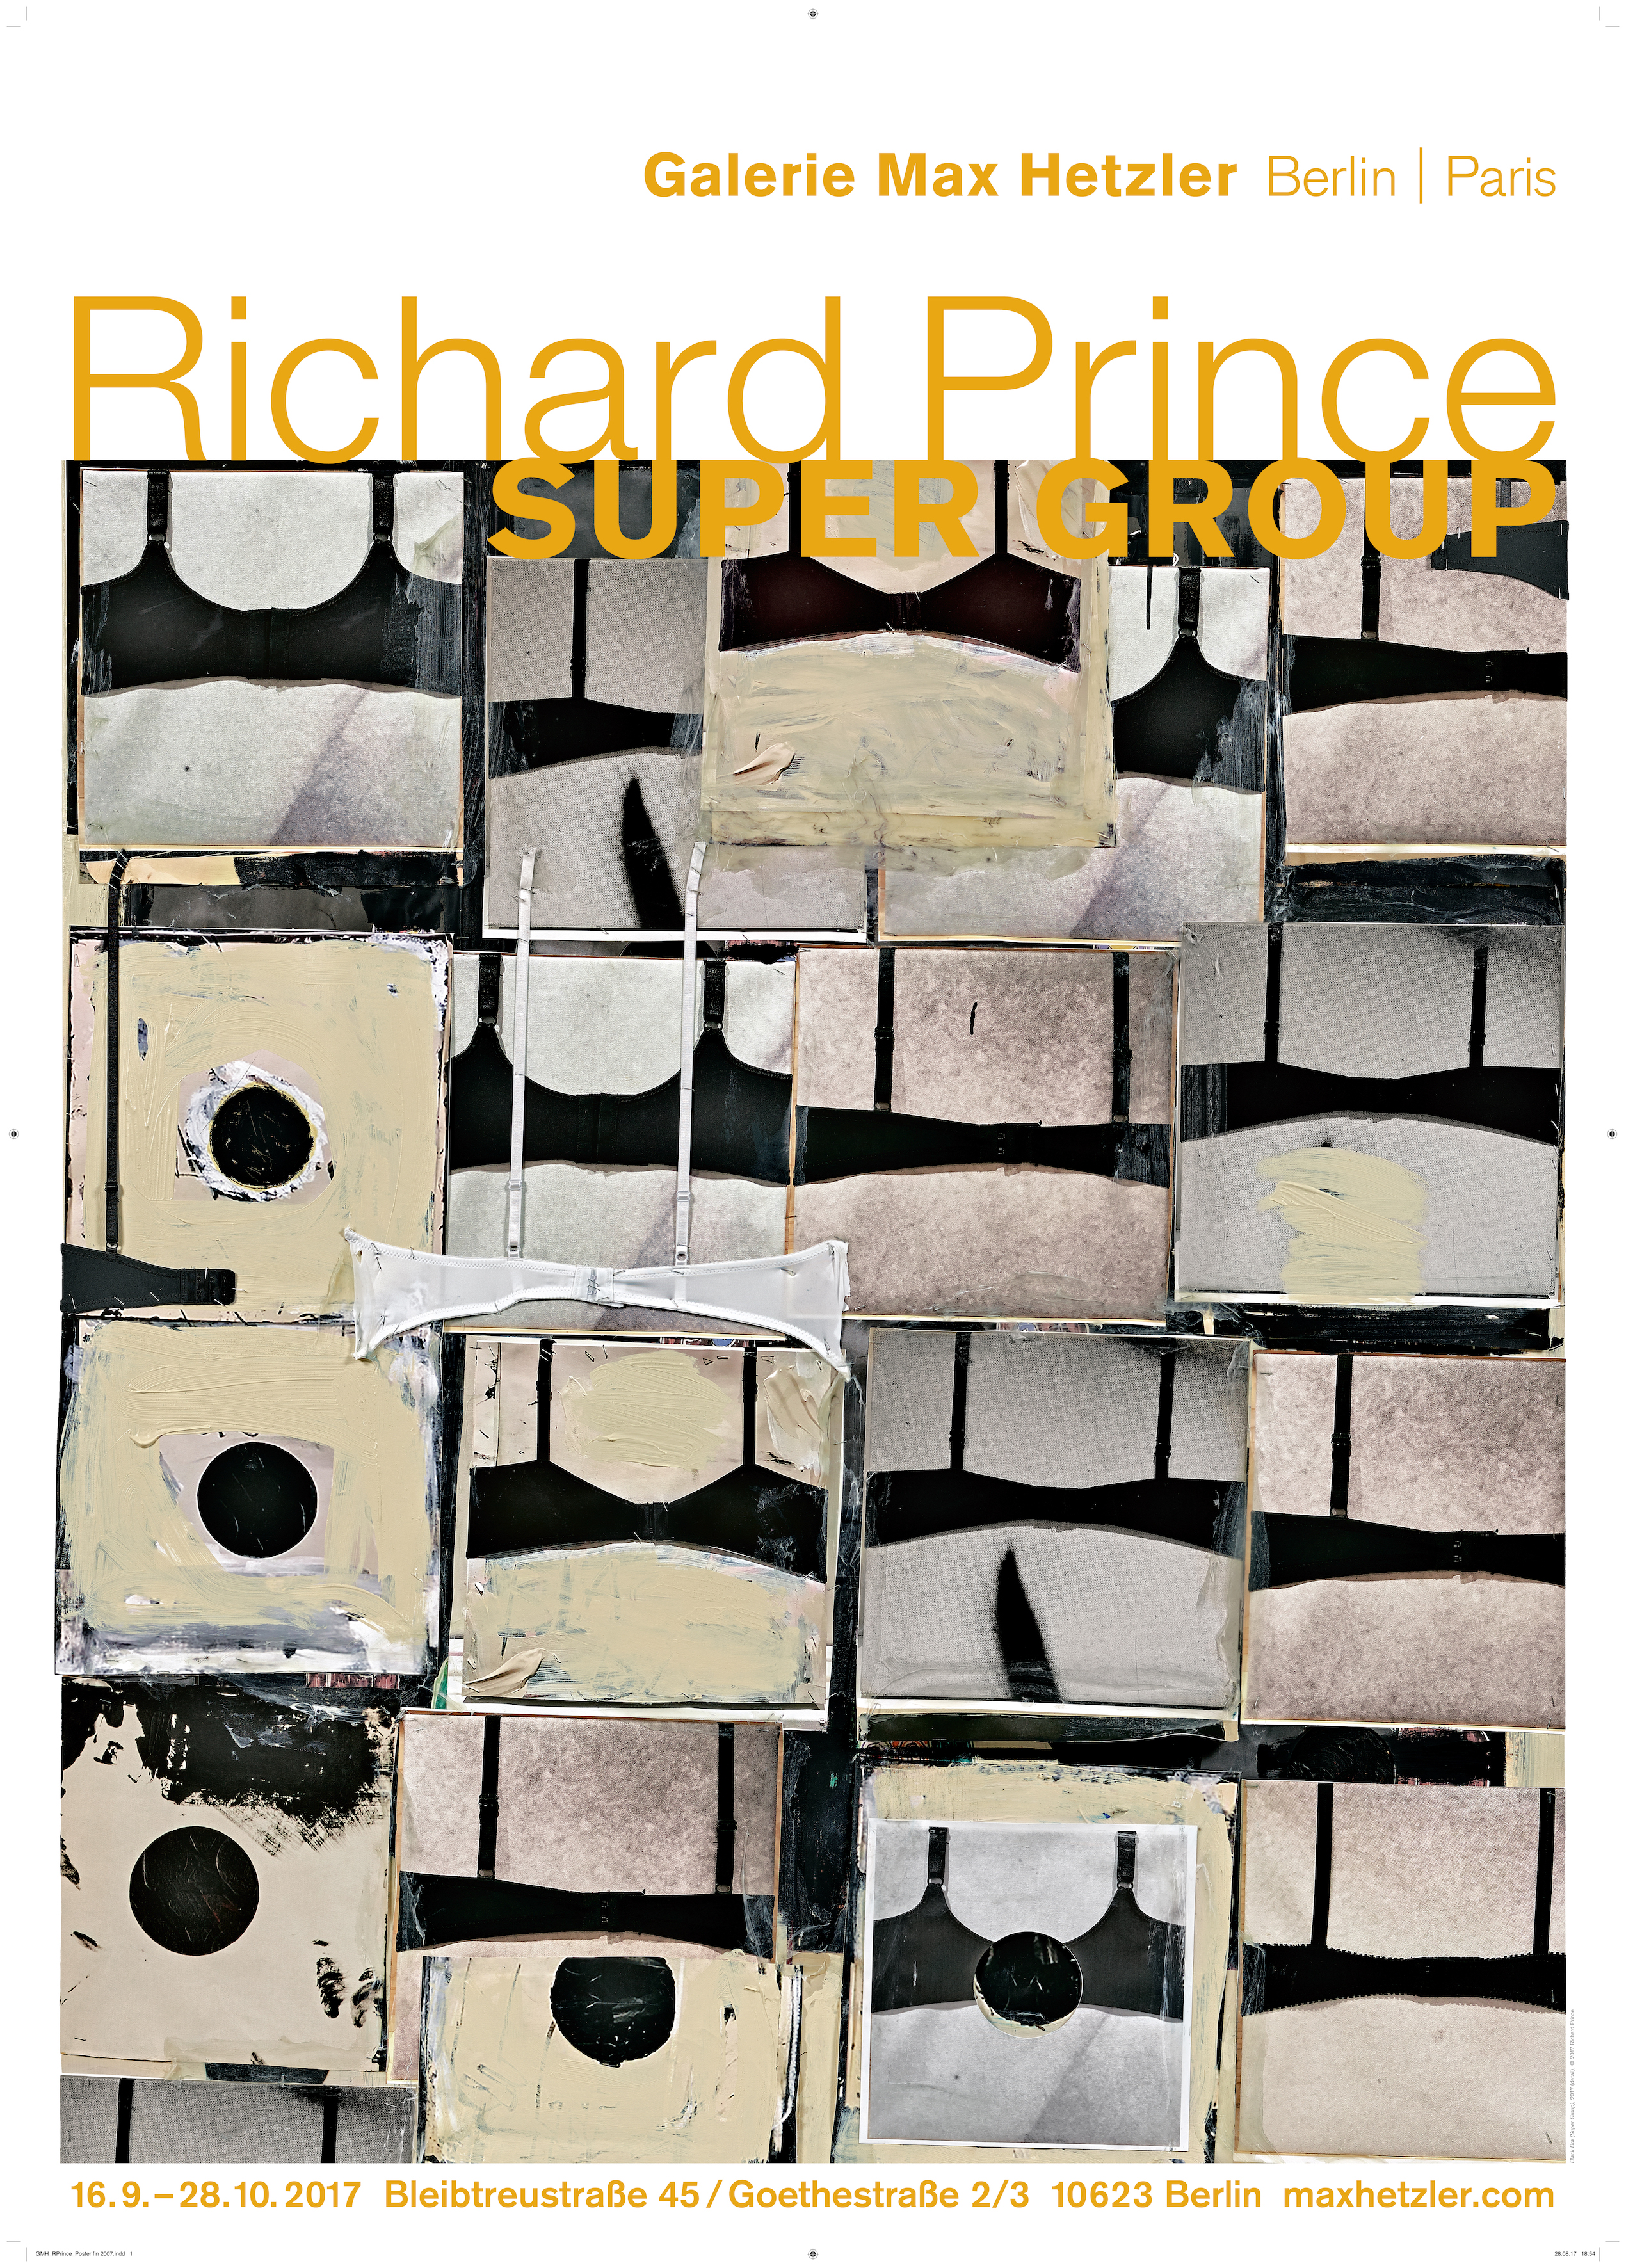 Richard Prince, Super Group - Galerie Max Hetzler